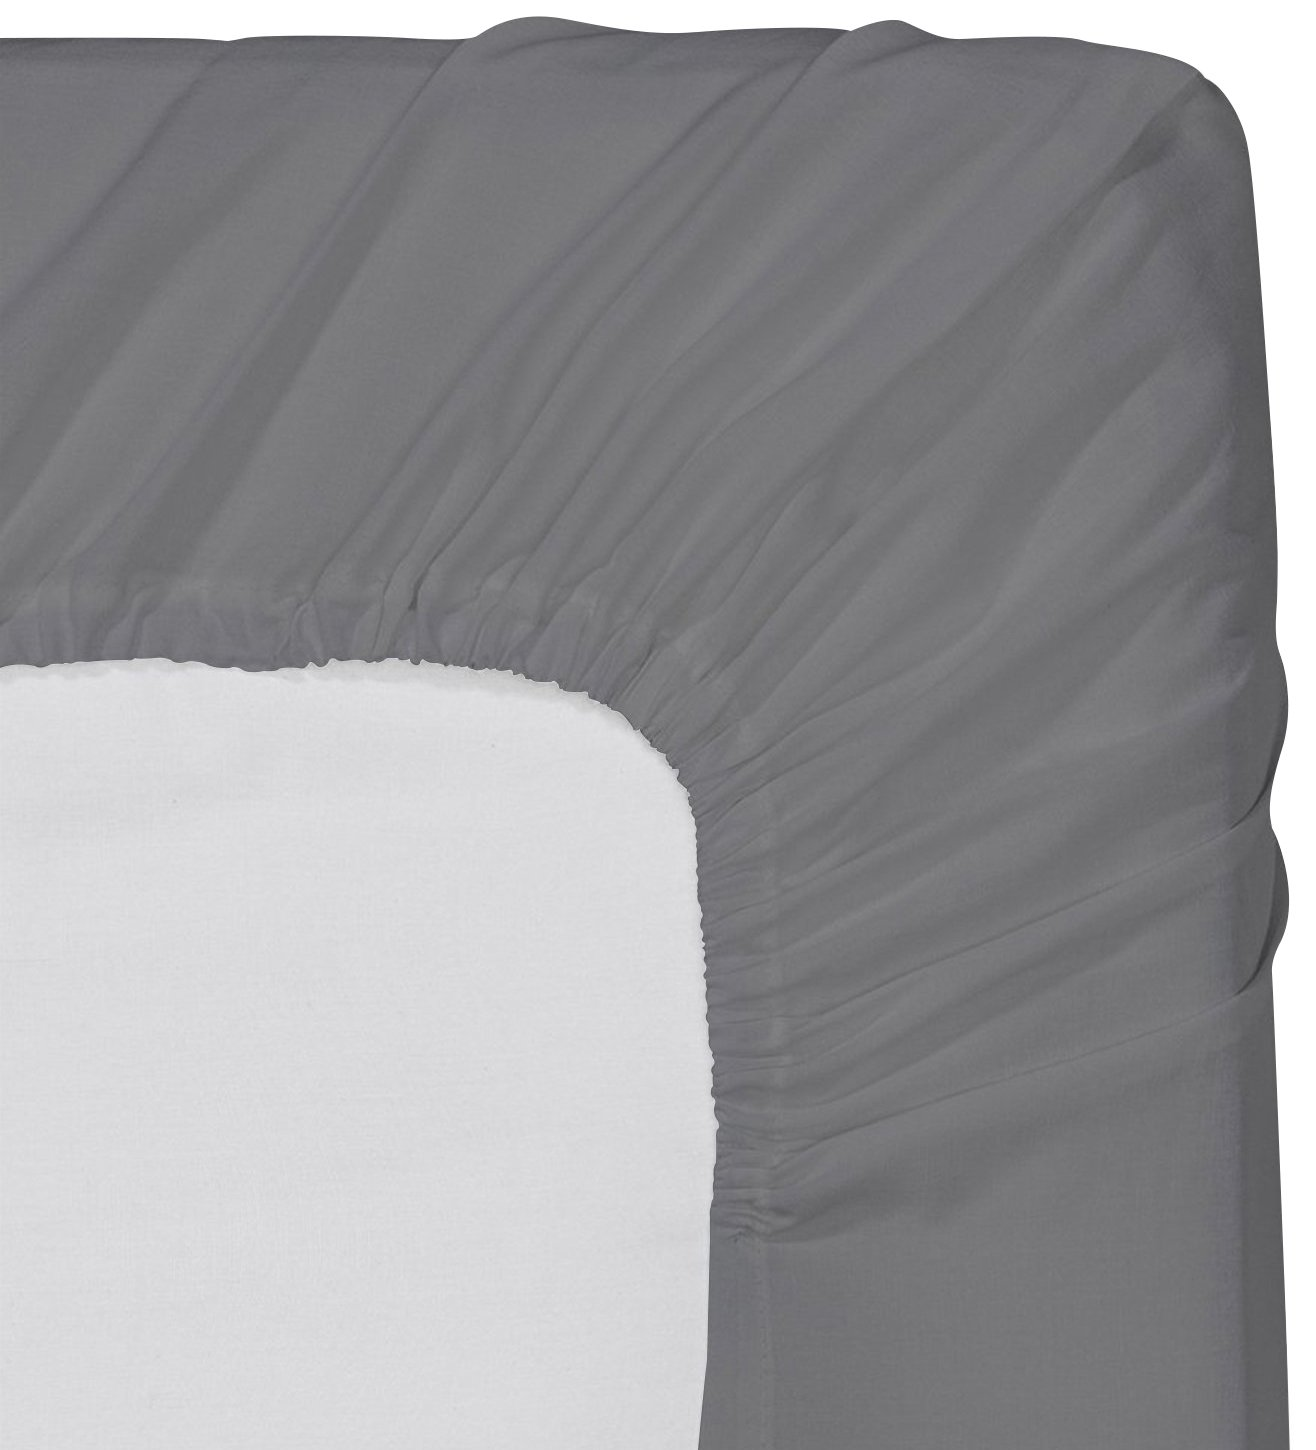 Utopia Bedding Fitted Sheet (Twin - Grey) - Deep Pocket Brushed Microfiber, Breathable, Extra Soft and Comfortable - Wrinkle, Fade, Stain and Abrasion Resistant